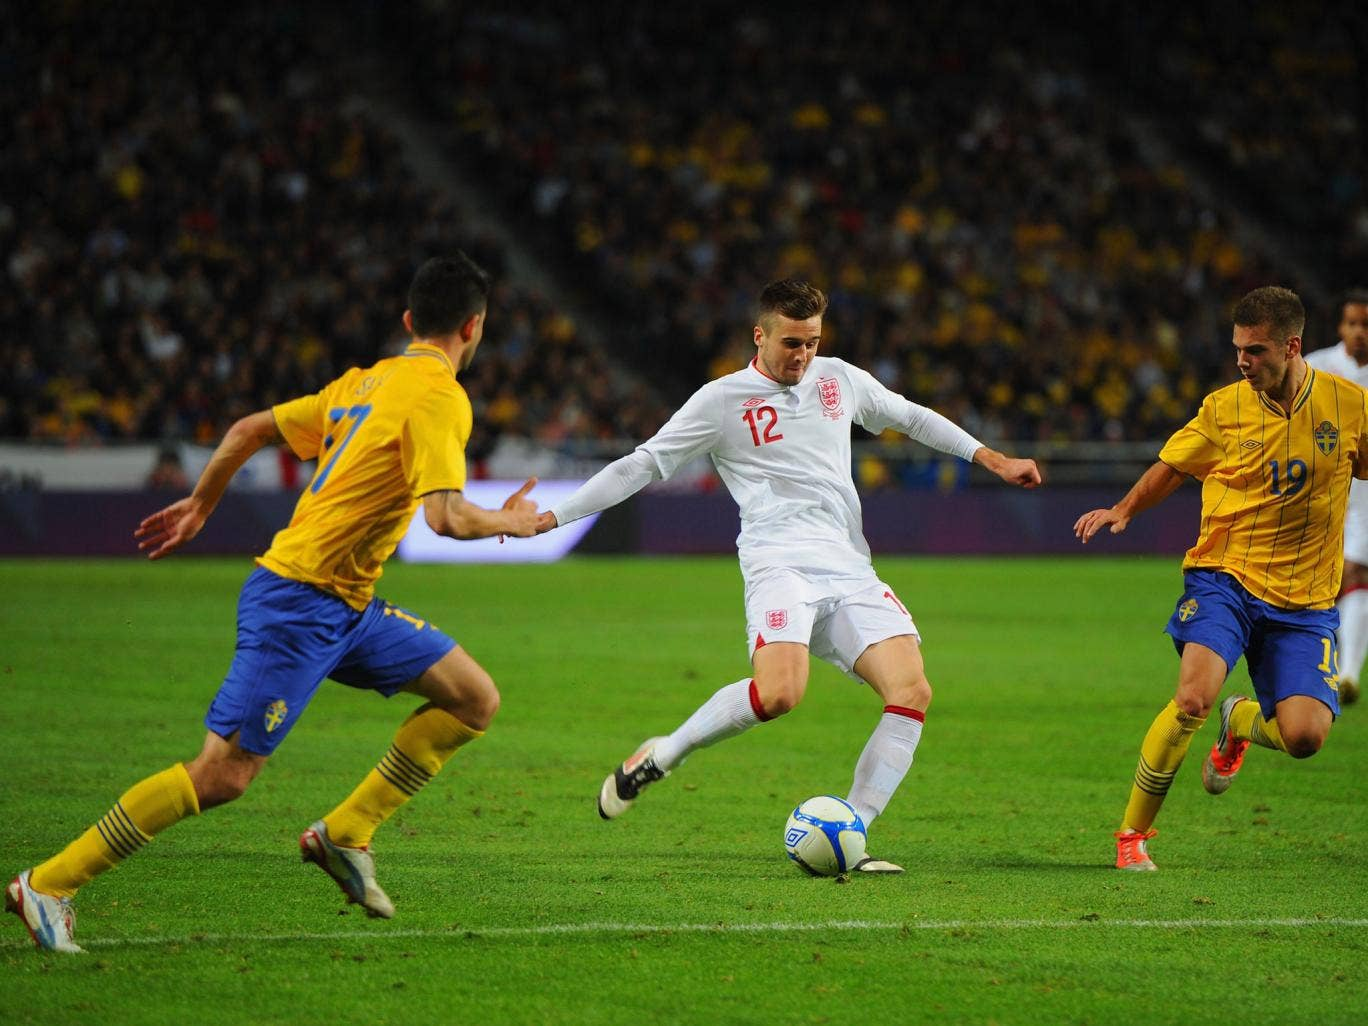 Carl Jenkinson made his debut for England in the international friendly against Sweden in November 2012